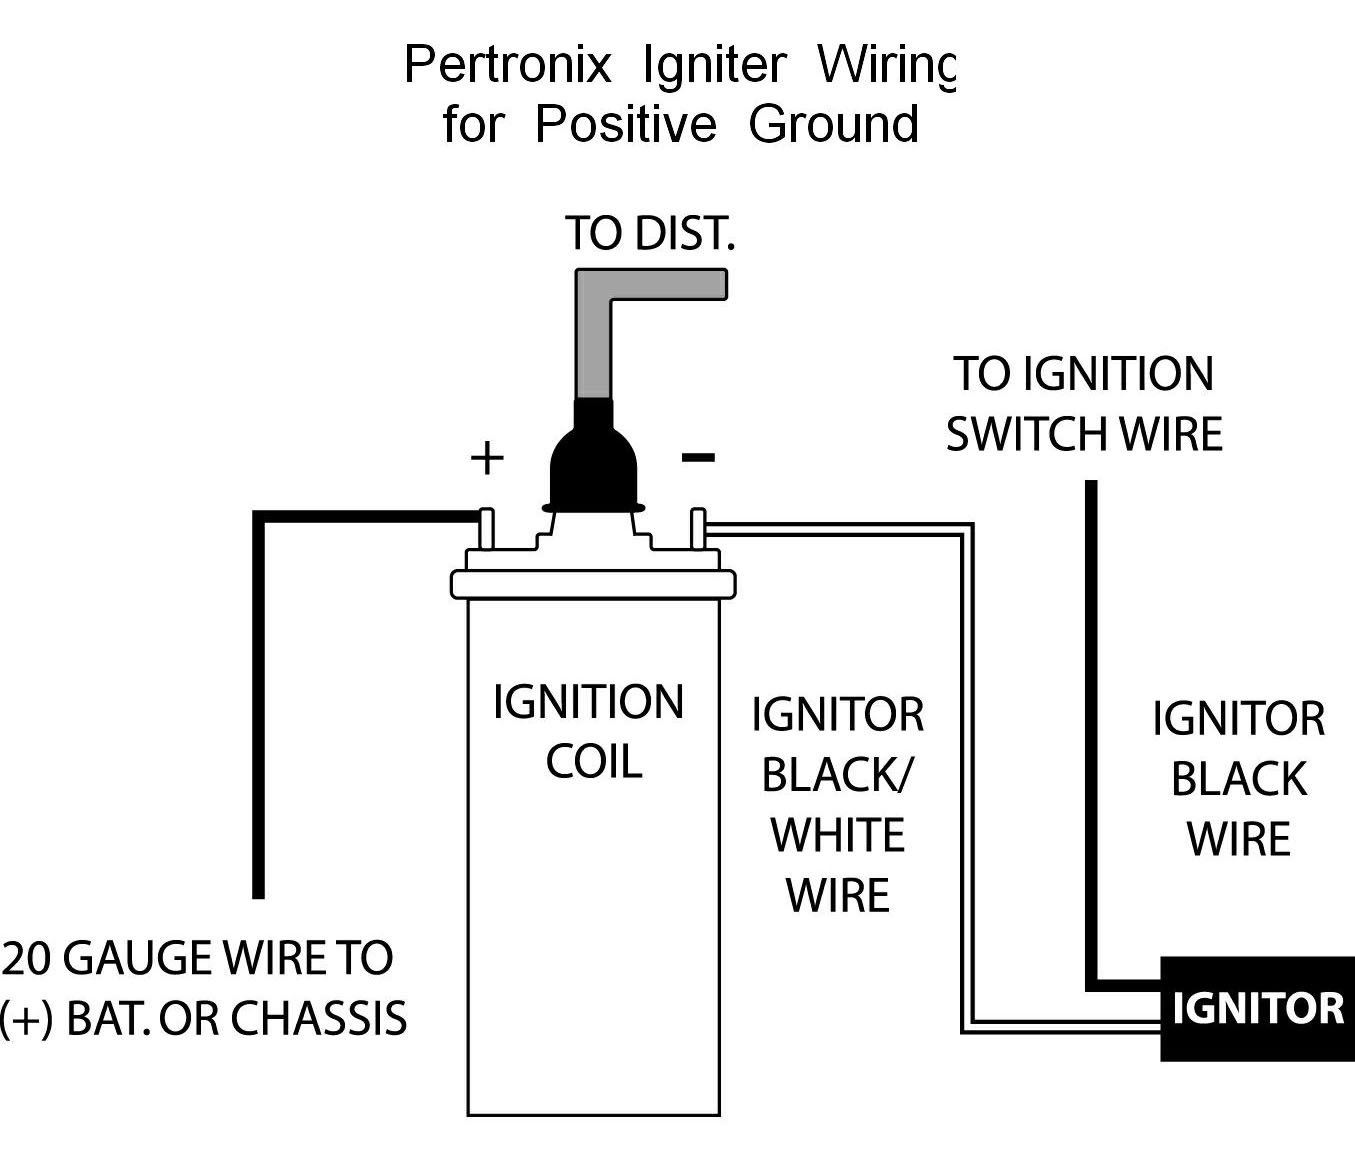 Ignition Coil Wiring Diagram Great Installation Of 1997 Chevy Car Box Rh 15 Pfotenpower Ev De 1970 Chevelle Motorcycles